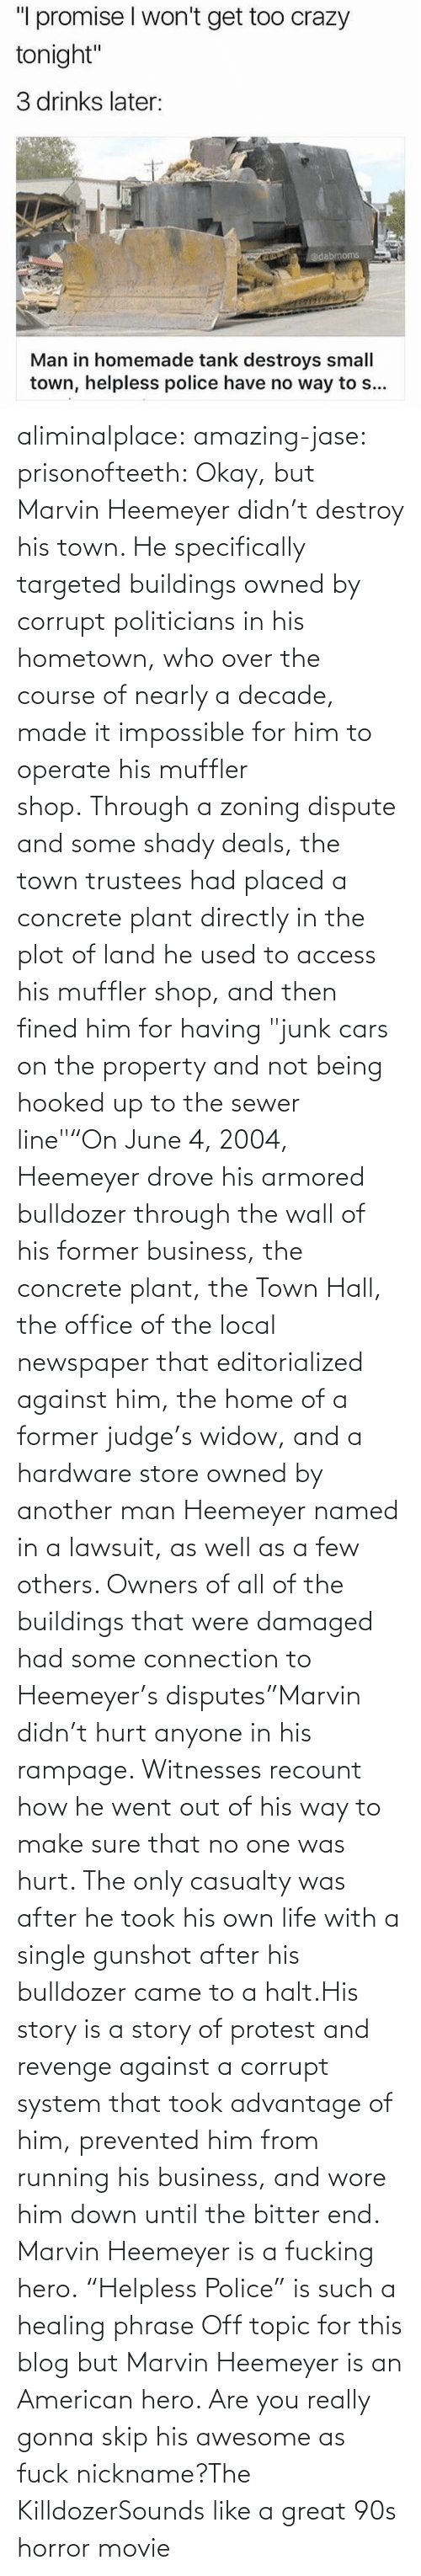 "Home: aliminalplace: amazing-jase:  prisonofteeth: Okay, but Marvin Heemeyer didn't destroy his town. He specifically targeted buildings owned by corrupt politicians in his hometown, who over the course of nearly a decade, made it impossible for him to operate his muffler shop. Through a zoning dispute and some shady deals, the town trustees had placed a concrete plant directly in the plot of land he used to access his muffler shop, and then fined him for having ""junk cars on the property and not being hooked up to the sewer line""""On June 4, 2004, Heemeyer drove his armored bulldozer through the wall of his former business, the concrete plant, the Town Hall, the office of the local newspaper that editorialized against him, the home of a former judge's widow, and a hardware store owned by another man Heemeyer named in a lawsuit, as well as a few others. Owners of all of the buildings that were damaged had some connection to Heemeyer's disputes""Marvin didn't hurt anyone in his rampage. Witnesses recount how he went out of his way to make sure that no one was hurt. The only casualty was after he took his own life with a single gunshot after his bulldozer came to a halt.His story is a story of protest and revenge against a corrupt system that took advantage of him, prevented him from running his business, and wore him down until the bitter end. Marvin Heemeyer is a fucking hero. ""Helpless Police"" is such a healing phrase    Off topic for this blog but Marvin Heemeyer is an American hero.     Are you really gonna skip his awesome as fuck nickname?The KilldozerSounds like a great 90s horror movie"